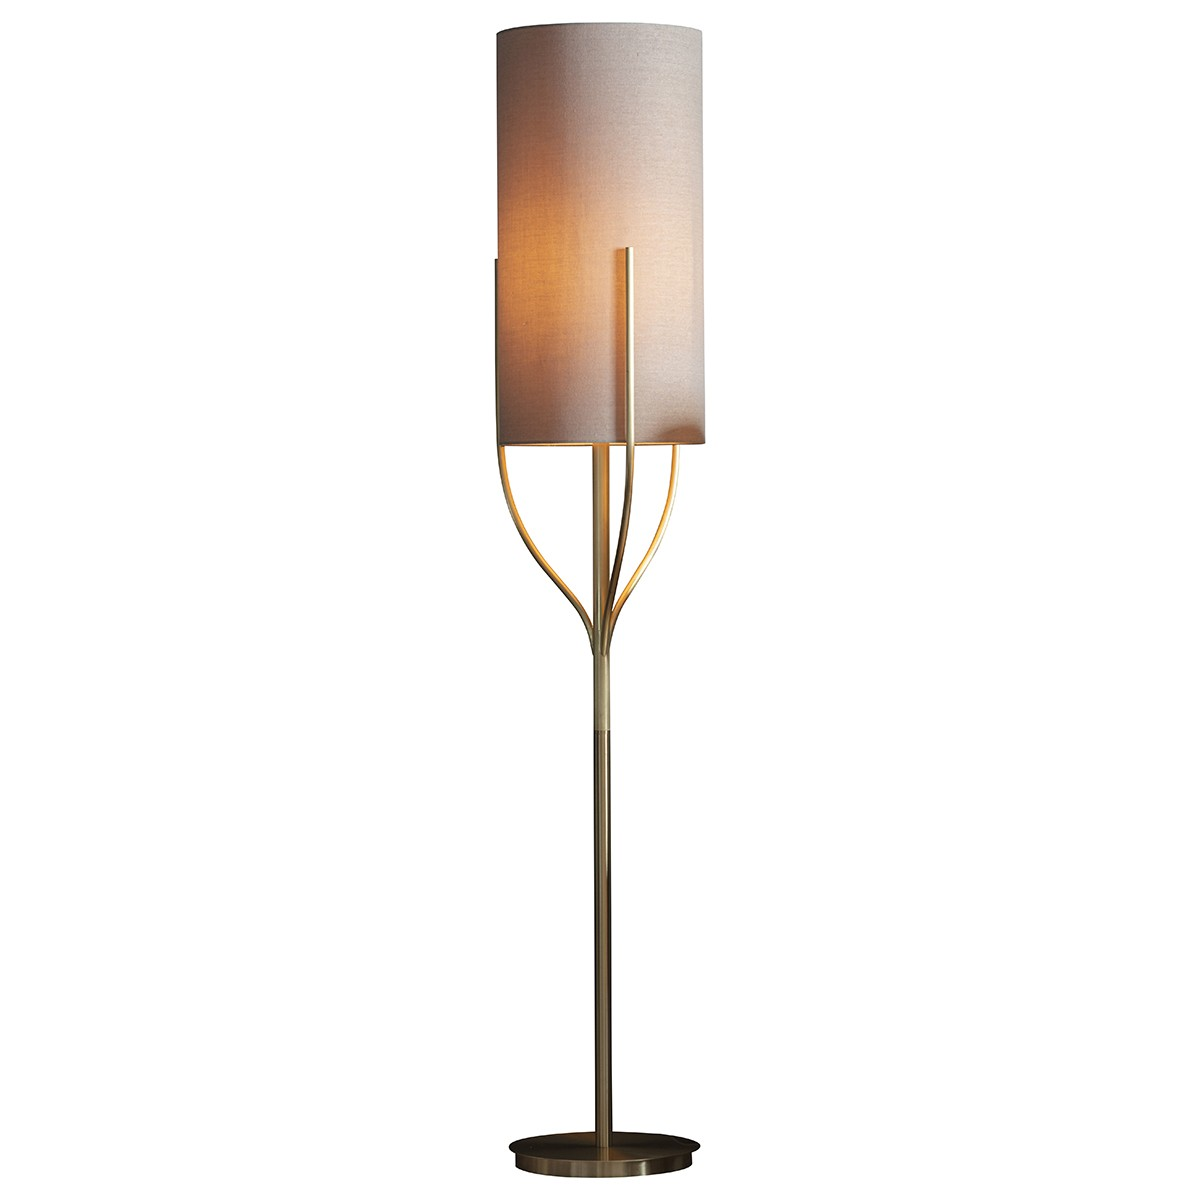 Kian Steel Base Floor Lamp